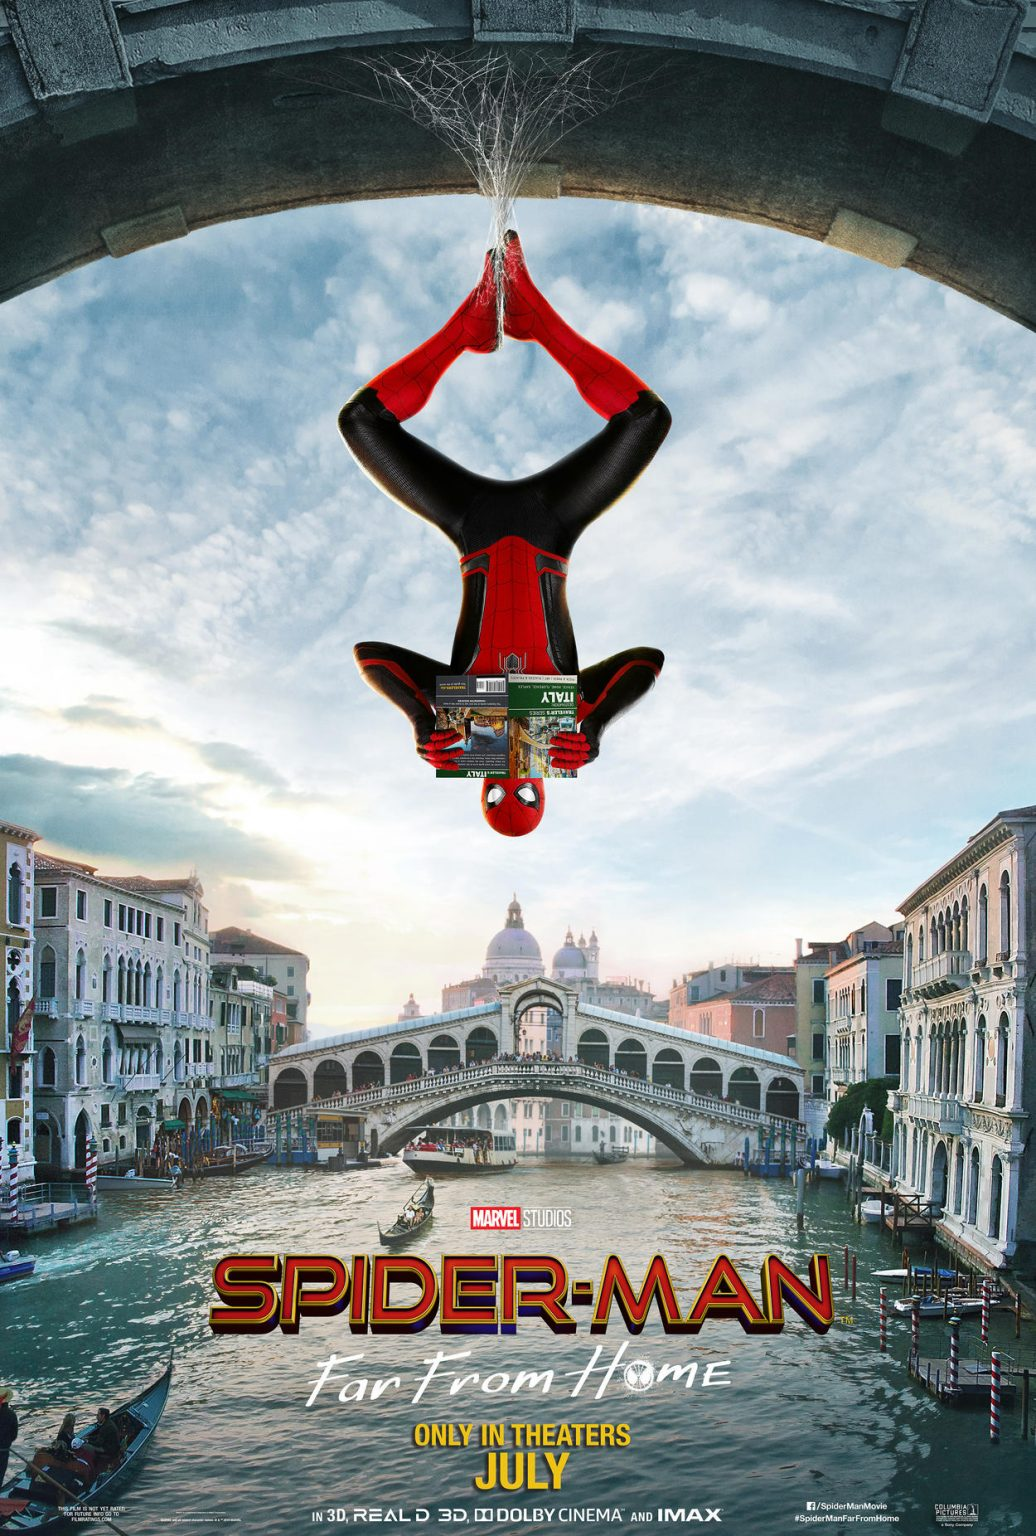 Spider-Man: Far From Home' is far from perfect – The Connector